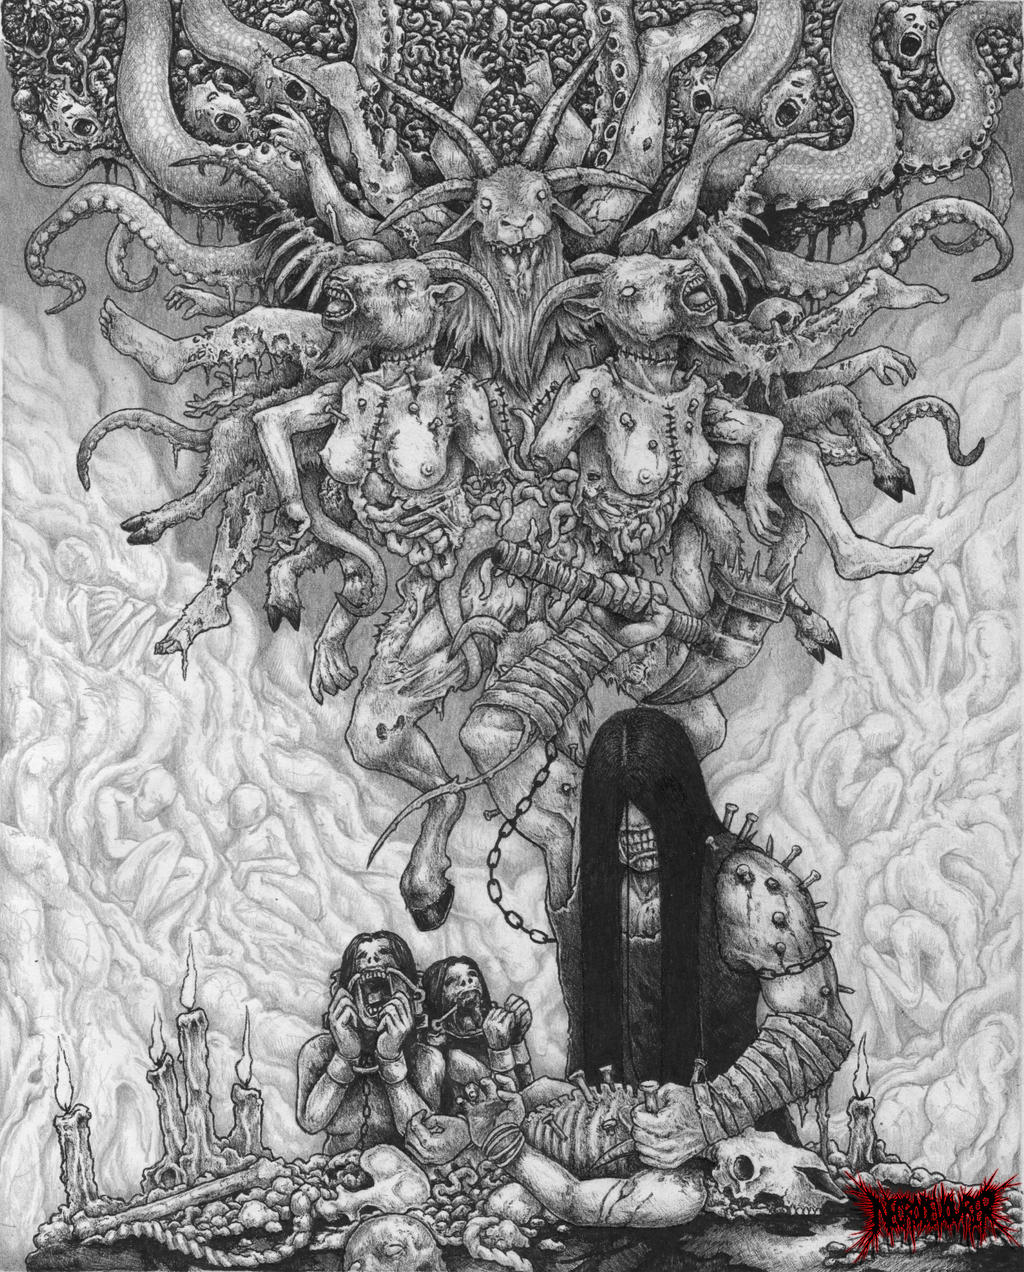 The Putrid Womb of the Goat